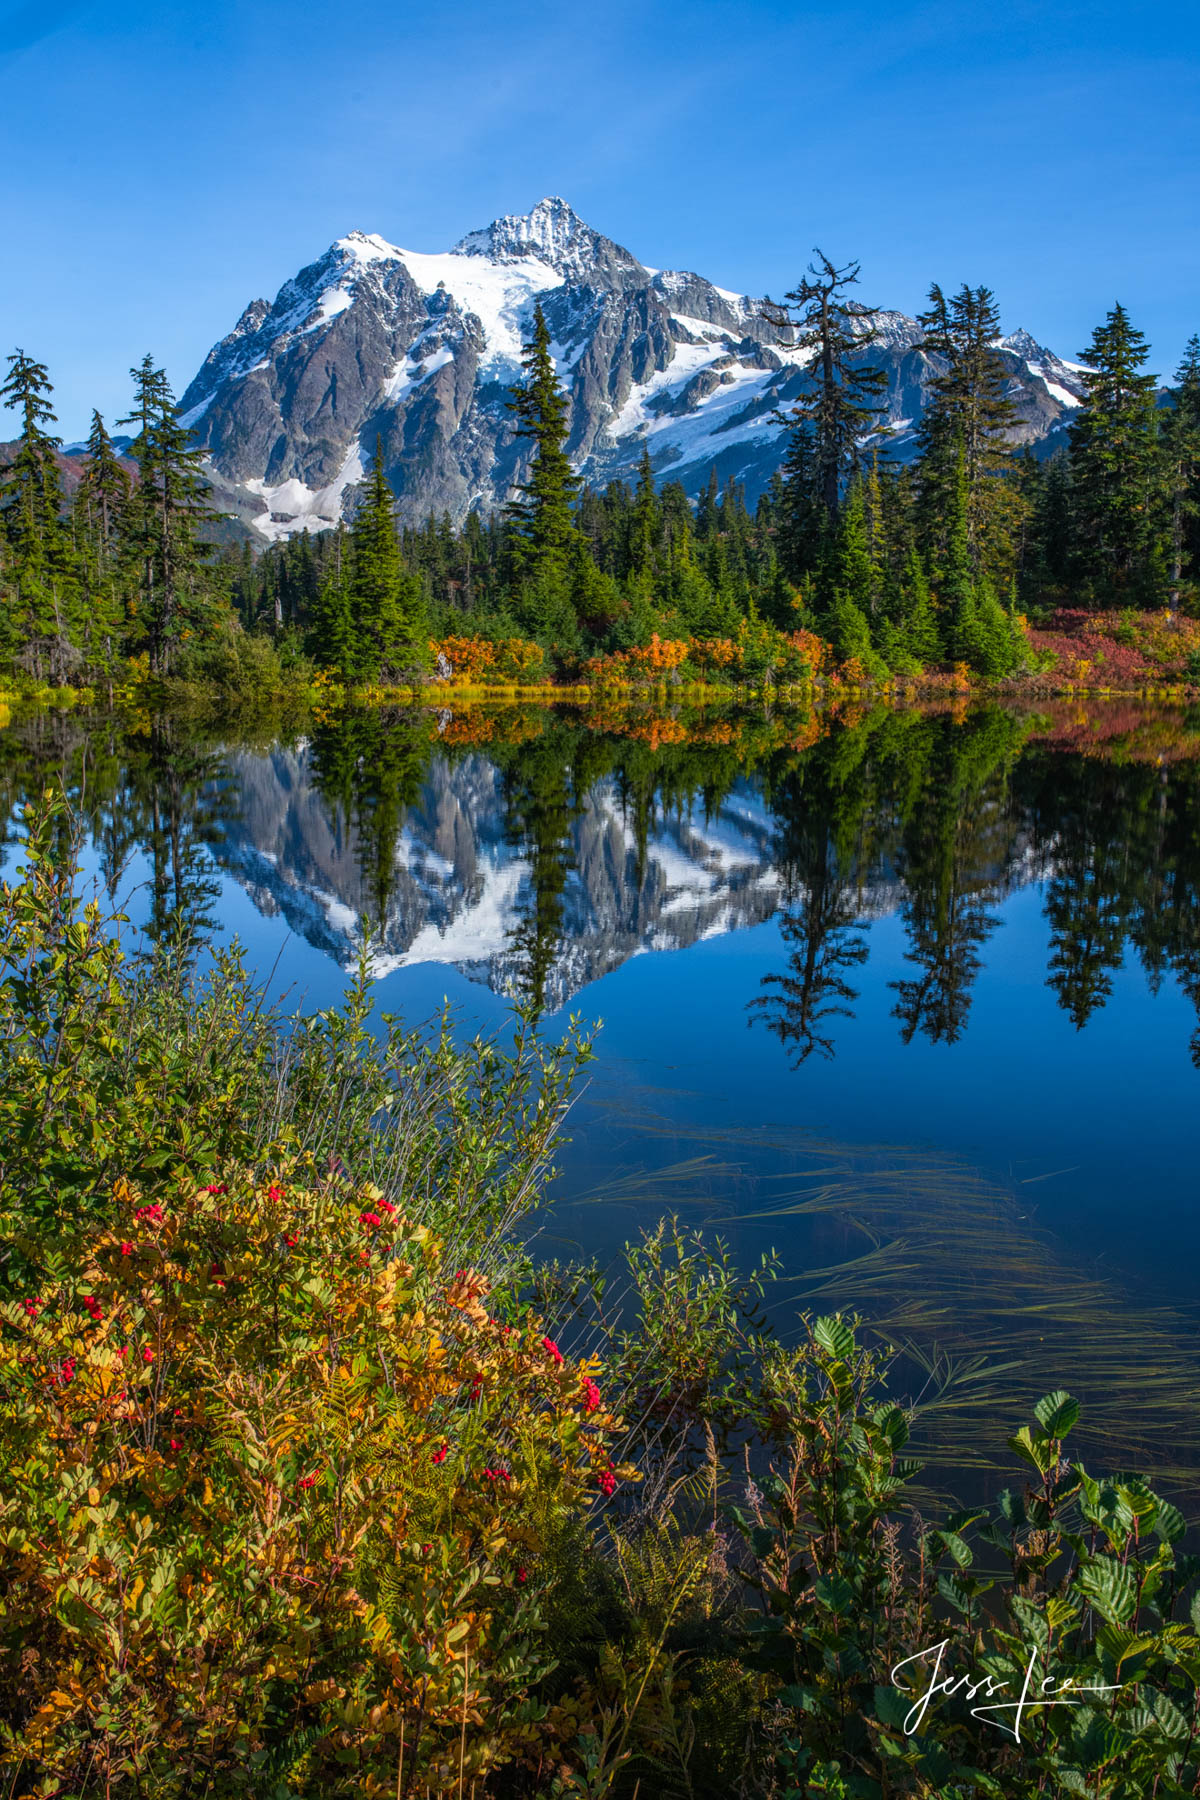 Limited Edition of 50 Exclusive high-resolution Museum Quality Fine Art Prints of Vertical lake Landscapes. Photos copyright ©...